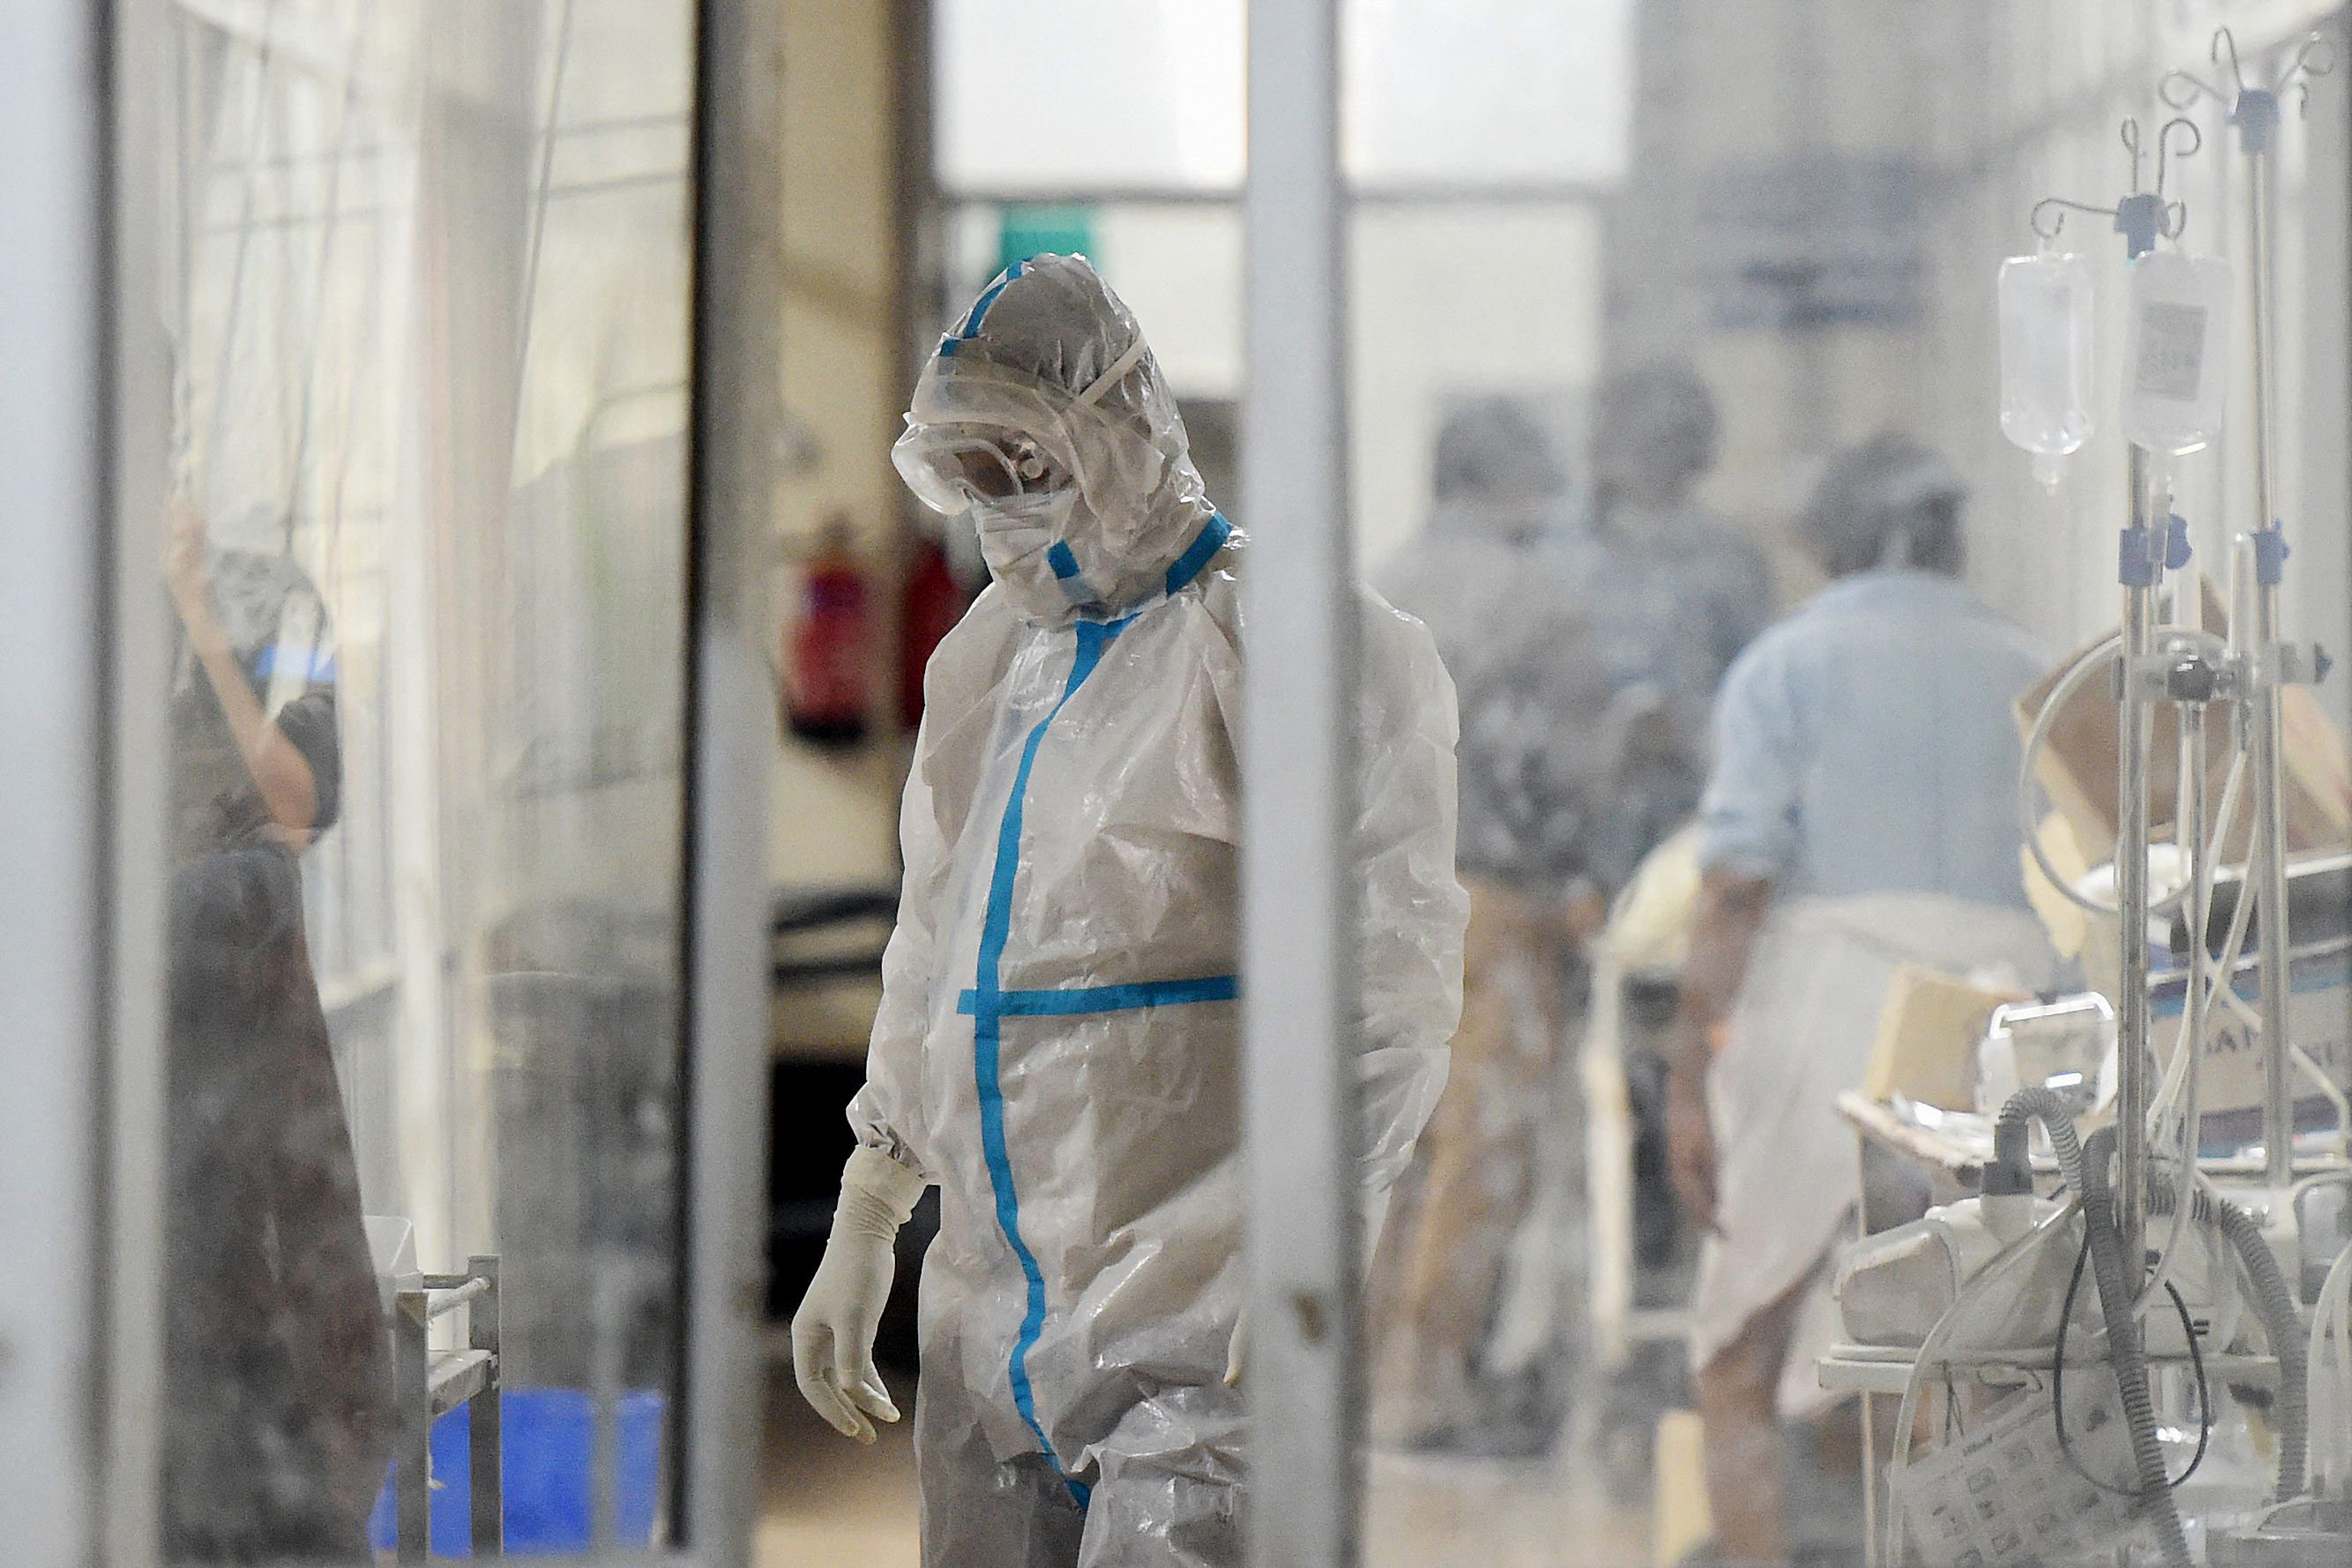 A health worker walks through a Covid-19 ward at the SRN hospital in Allahabad, India, on May 3.